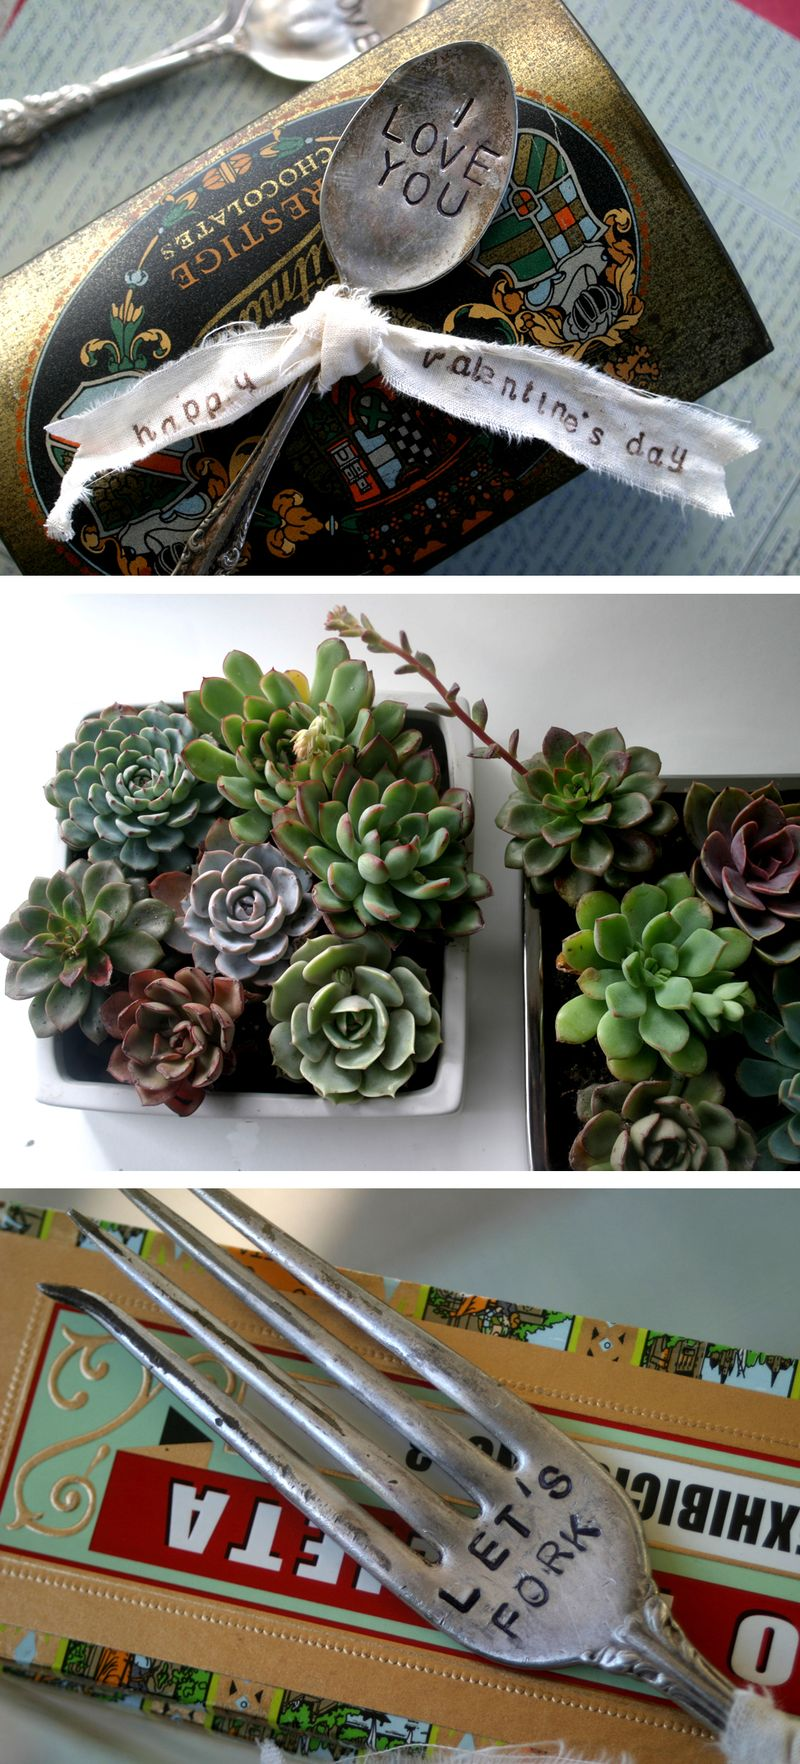 Trysucculents1